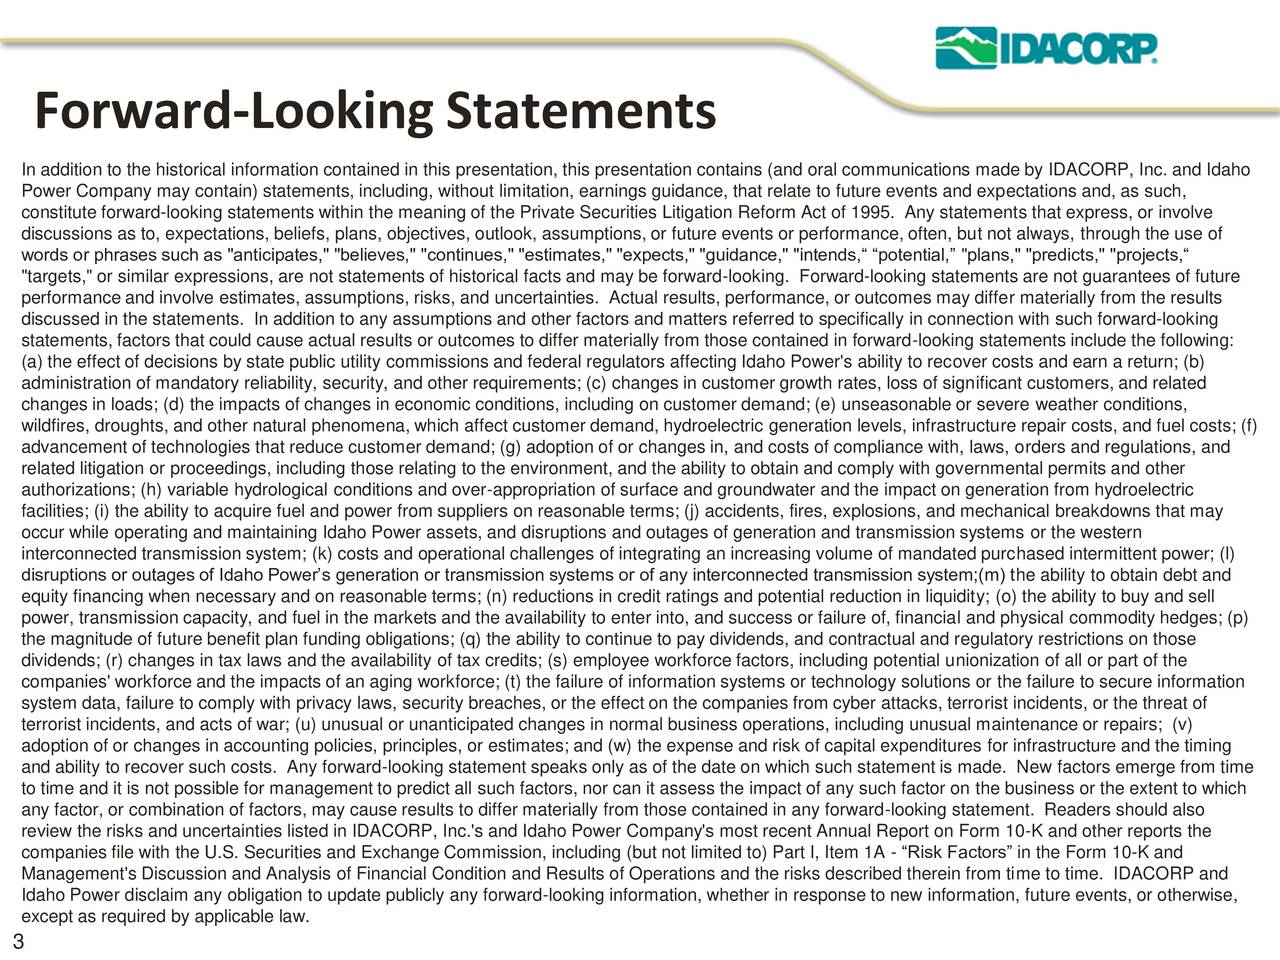 """In addition to the historical information contained in this presentation, this presentation contains (and oral communications made by IDACORP, Inc. and Idaho Power Company may contain) statements, including, without limitation, earnings guidance, that relate to future events and expectations and, as such, constitute forward-looking statements within the meaning of the Private Securities Litigation Reform Act of 1995. Any statements that express, or involve discussions as to, expectations, beliefs, plans, objectives, outlook, assumptions, or future events or performance, often, but not always, through the use of words or phrases such as """"anticipates,"""" """"believes,"""" """"continues,"""" """"estimates,"""" """"expects,"""" """"guidance,"""" """"intends, potential, """"plans,"""" """"predicts,"""" """"projects, """"targets,"""" or similar expressions, are not statements of historical facts and may be forward-looking. Forward-looking statements are not guarantees of future performance and involve estimates, assumptions, risks, and uncertainties. Actual results, performance, or outcomes may differ materially from the results discussed in the statements. In addition to any assumptions and other factors and matters referred to specifically in connection with such forward-looking statements, factors that could cause actual results or outcomes to differ materially from those contained in forward-looking statements include the following: (a) the effect of decisions by state public utility commissions and federal regulators affecting Idaho Power's ability to recover costs and earn a return; (b) administration of mandatory reliability, security, and other requirements; (c) changes in customer growth rates, loss of significant customers, and related changes in loads; (d) the impacts of changes in economic conditions, including on customer demand; (e) unseasonable or severe weather conditions, wildfires, droughts, and other natural phenomena, which affect customer demand, hydroelectric generation levels, infrastructure repair costs"""